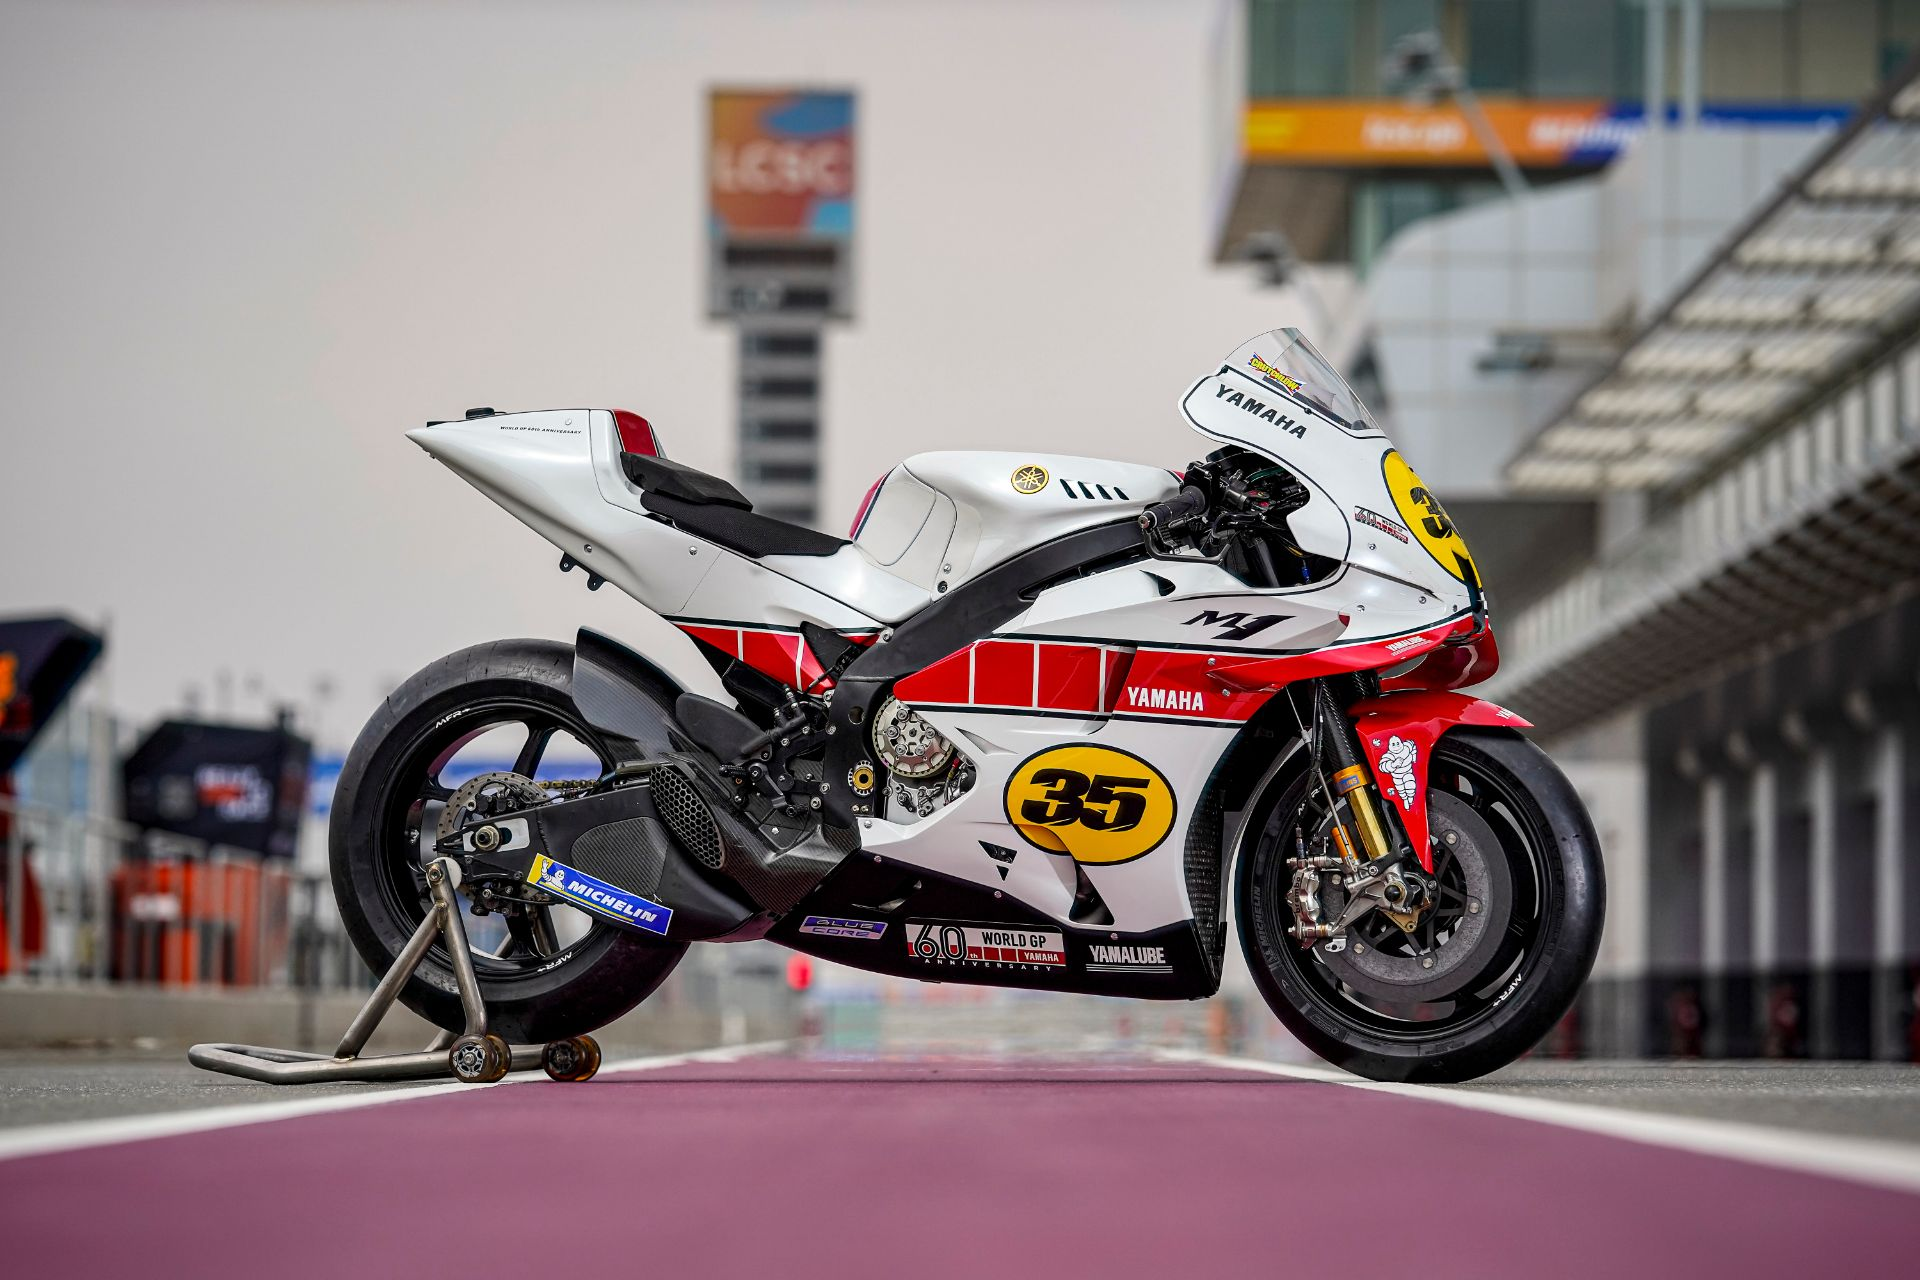 Cal Crutchlow Celebrating 60 Years of Grand Prix Racing with YZR M1 in Traditional Yamaha WhiteRed Livery (1)